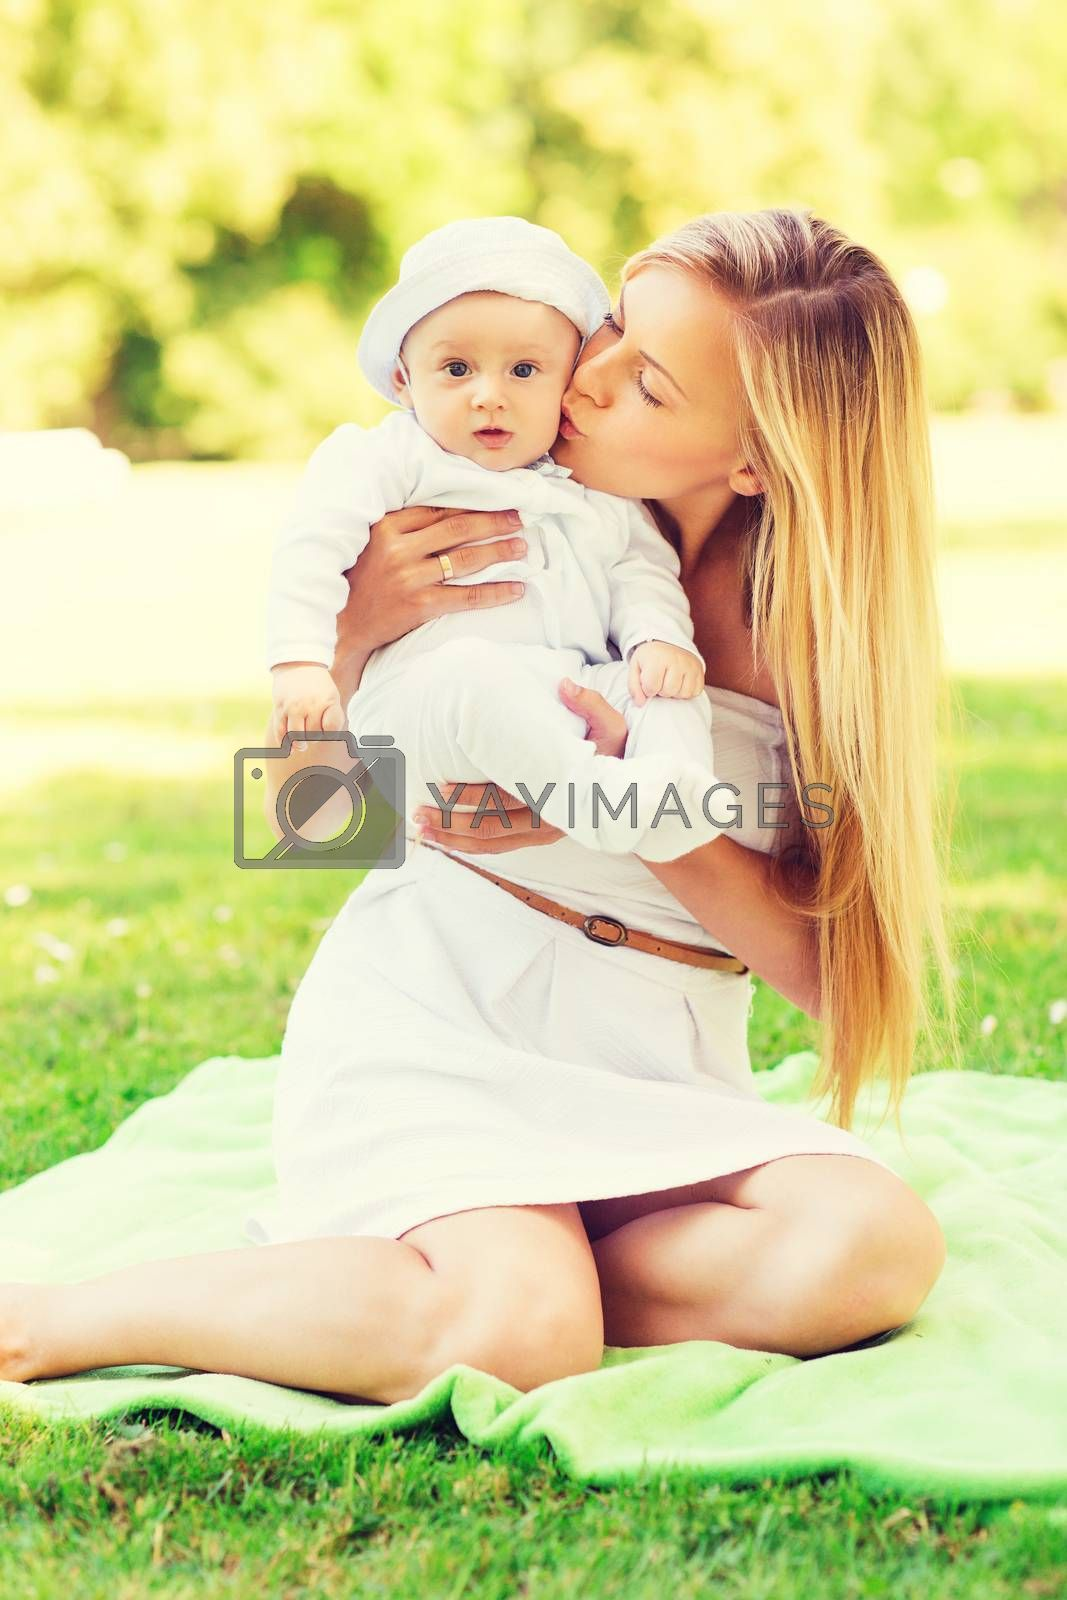 Royalty free image of happy mother with little baby sitting on blanket by dolgachov